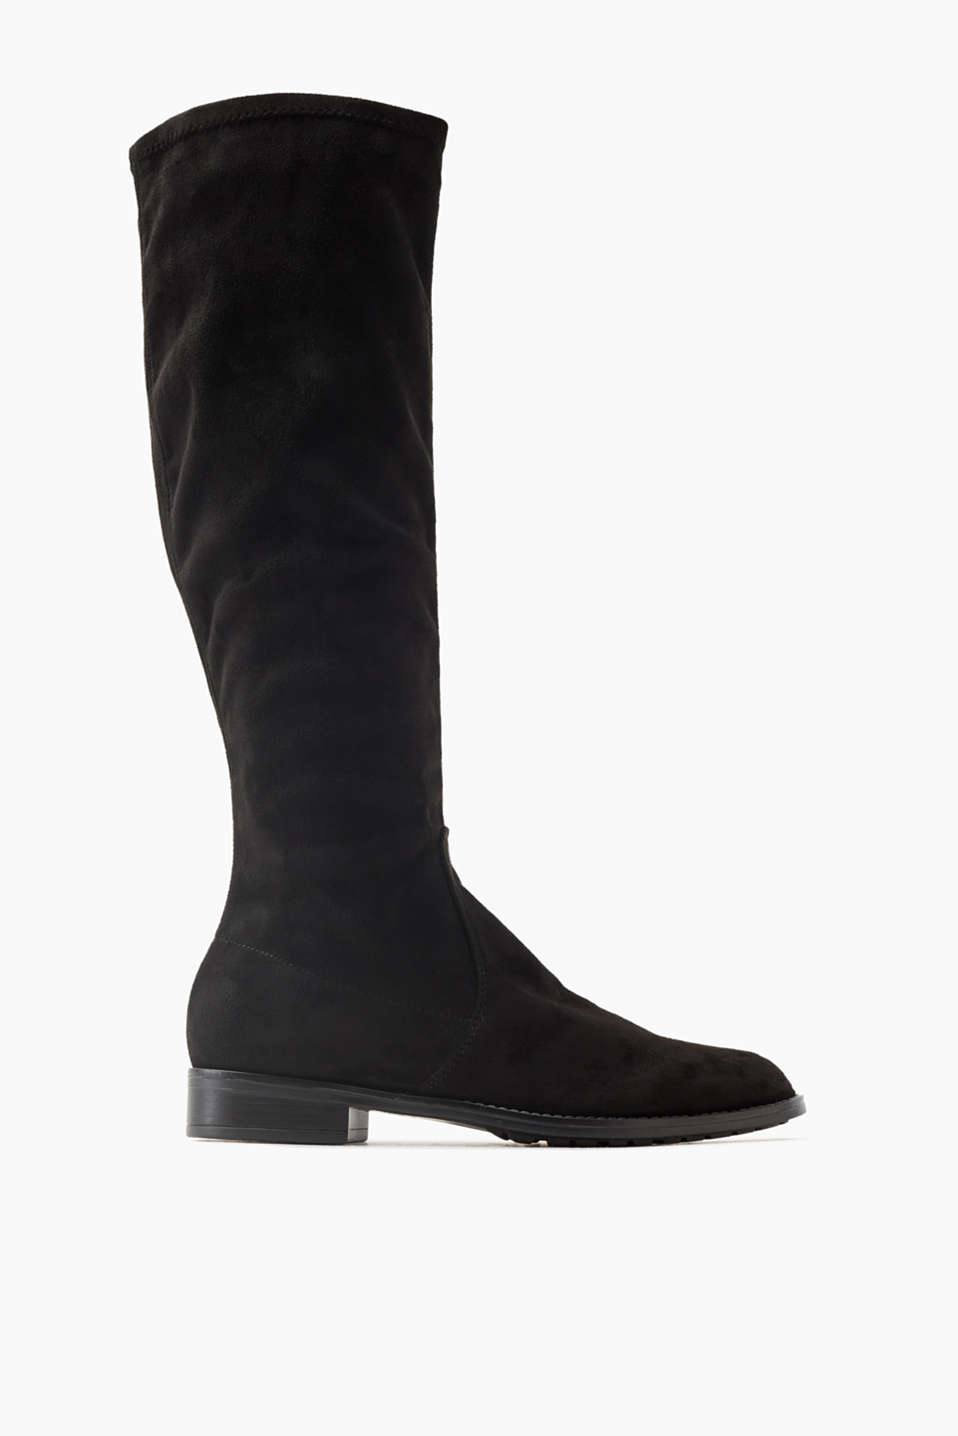 Your boots for between the seasons: knee-high boots with an elasticated microfibre shaft and a non-slip sole.